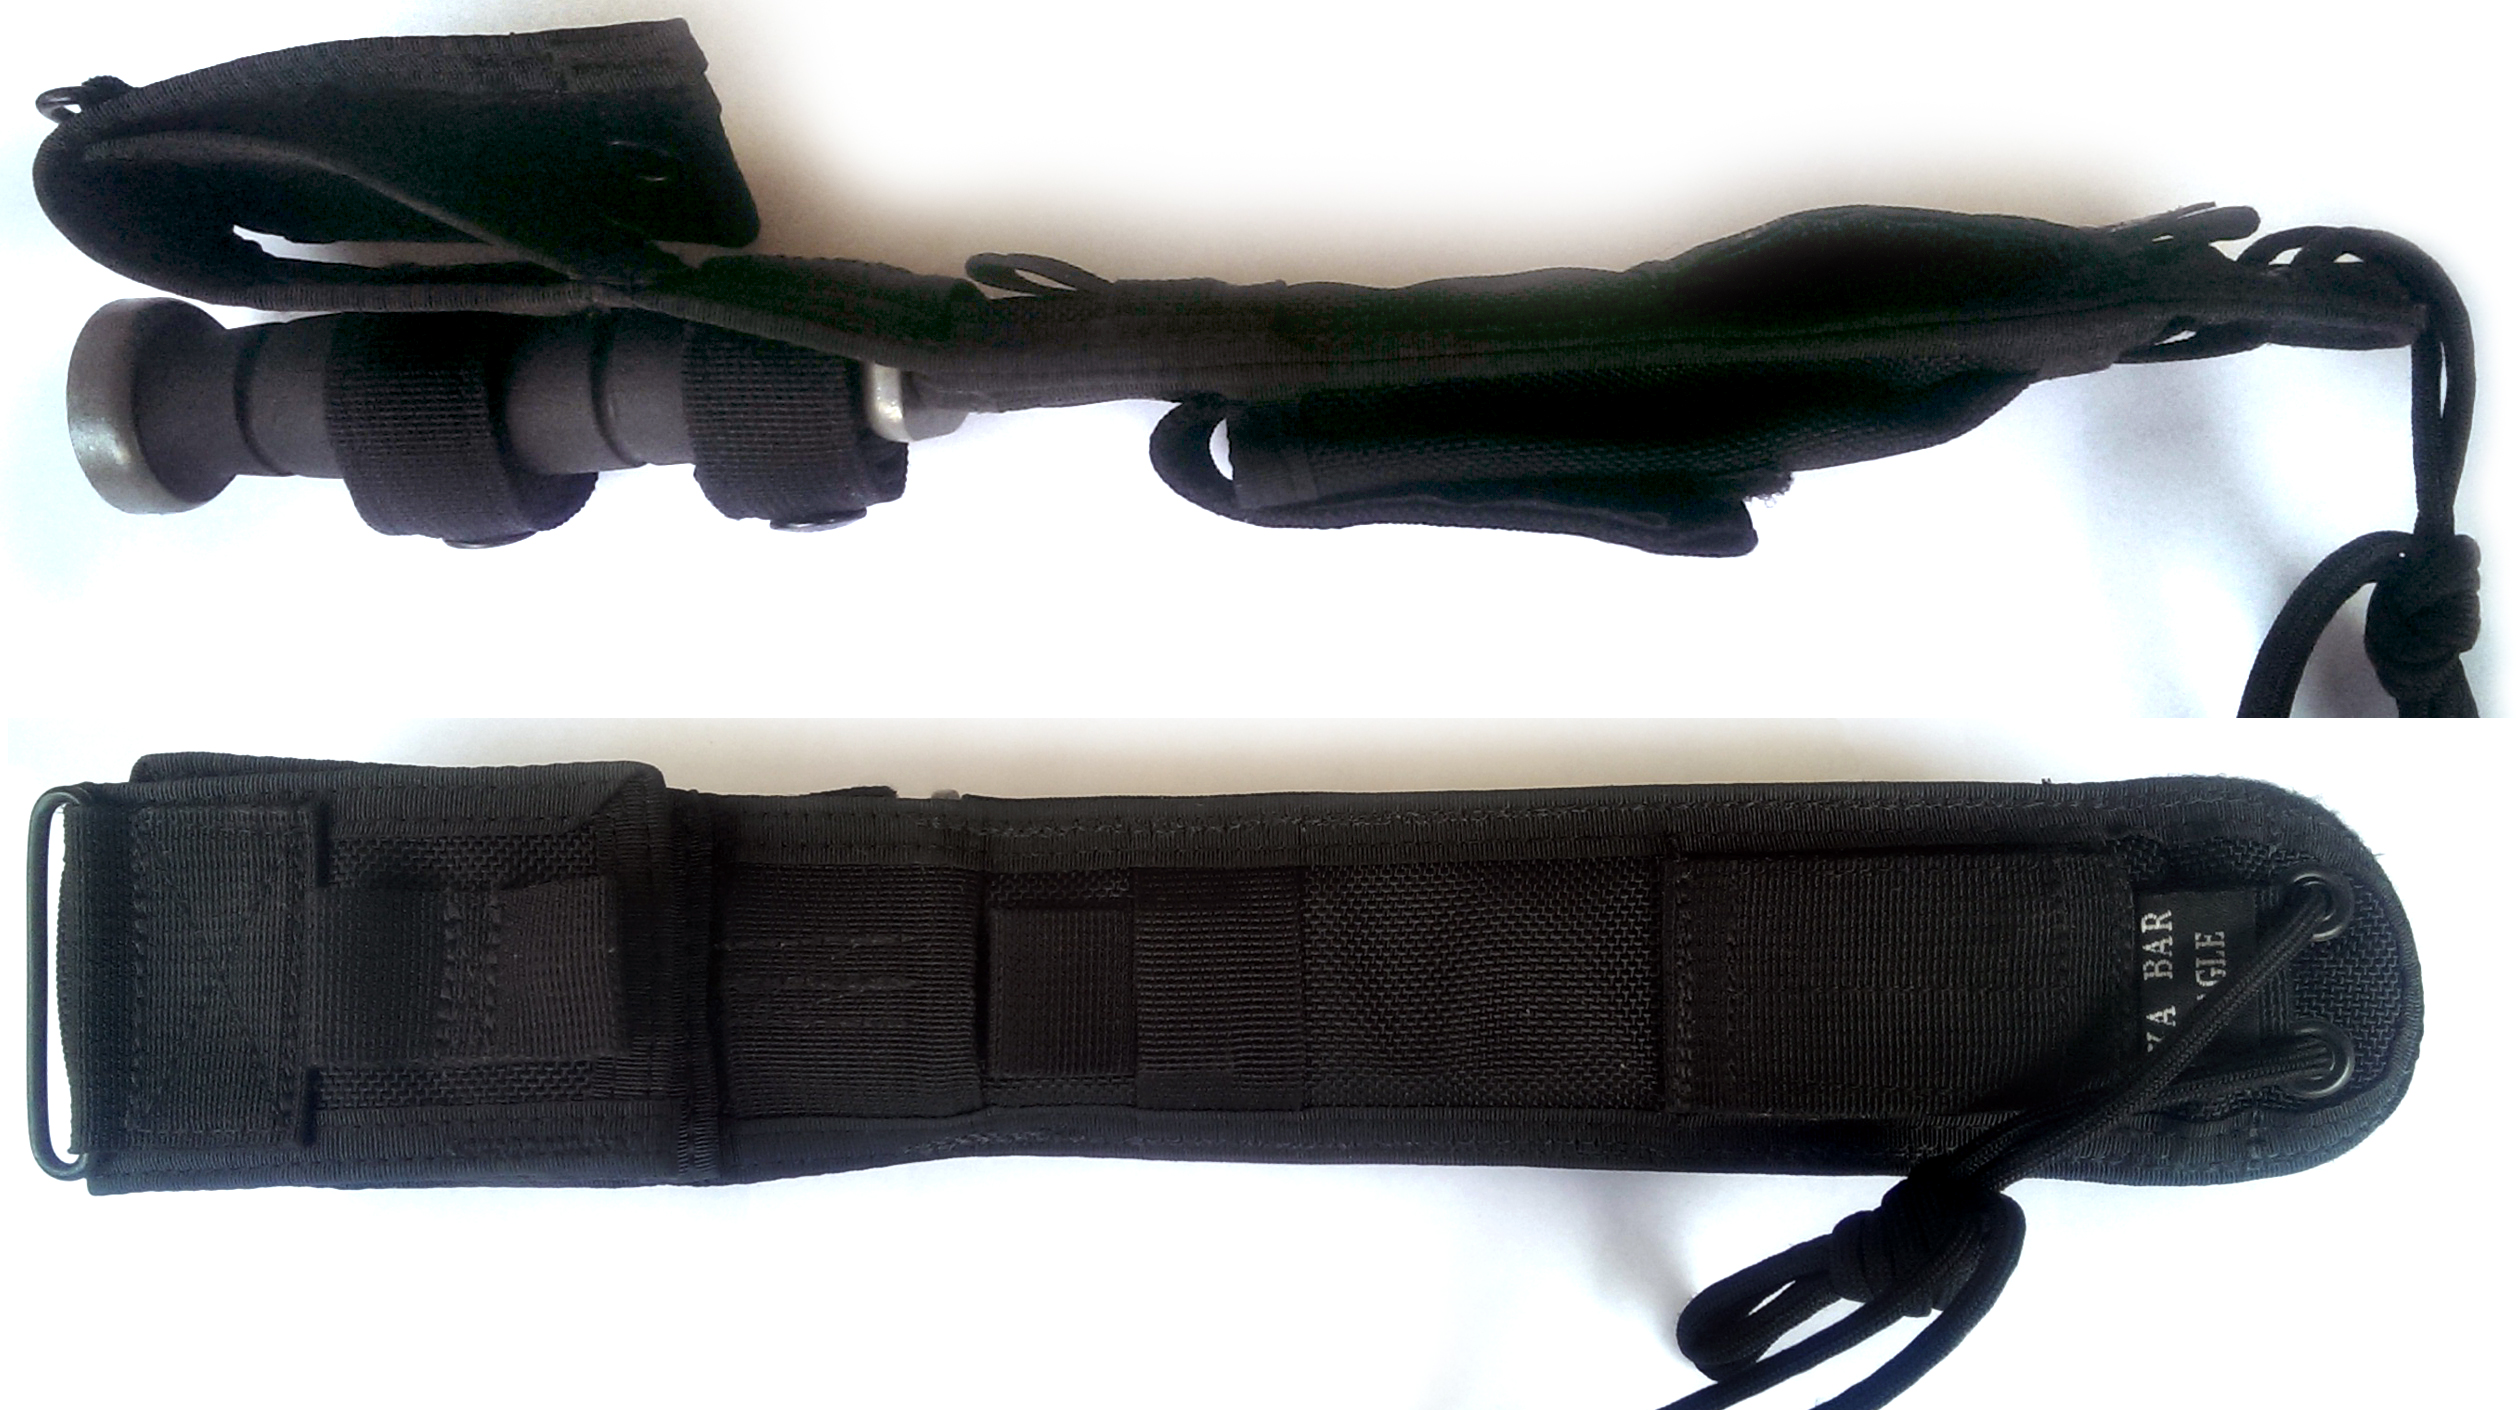 The side and back of the KA-BAR Eagle Cordura sheath